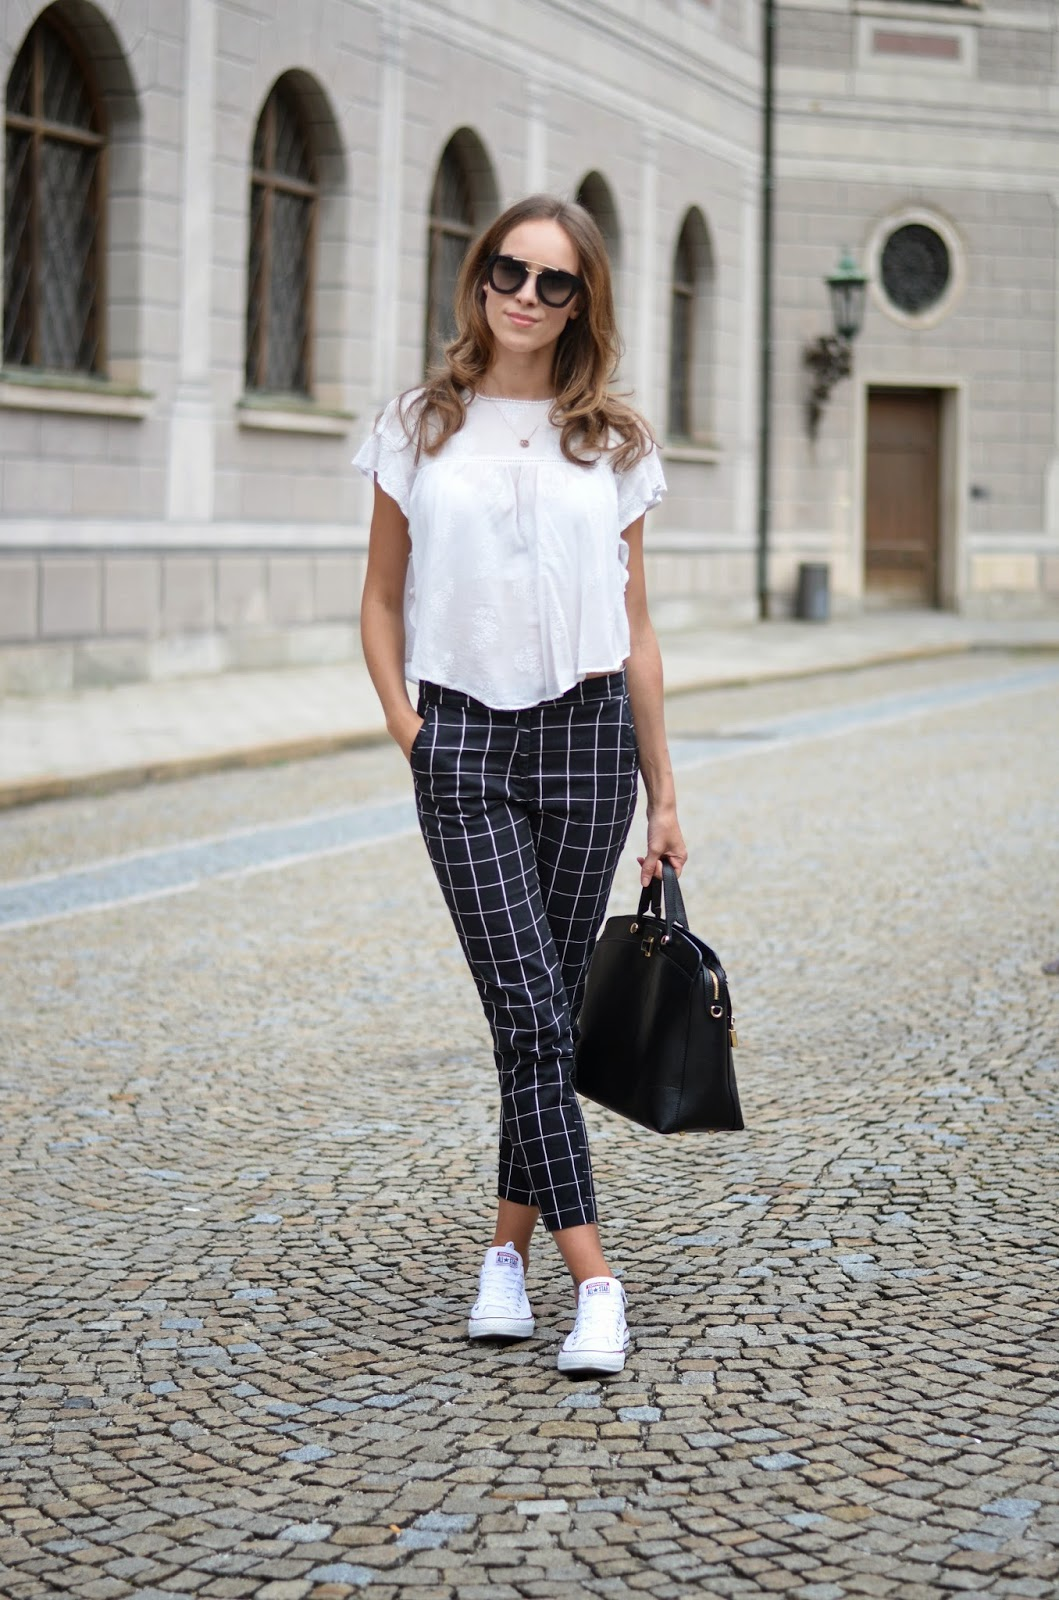 kristjaana mere munich german fashion blogger